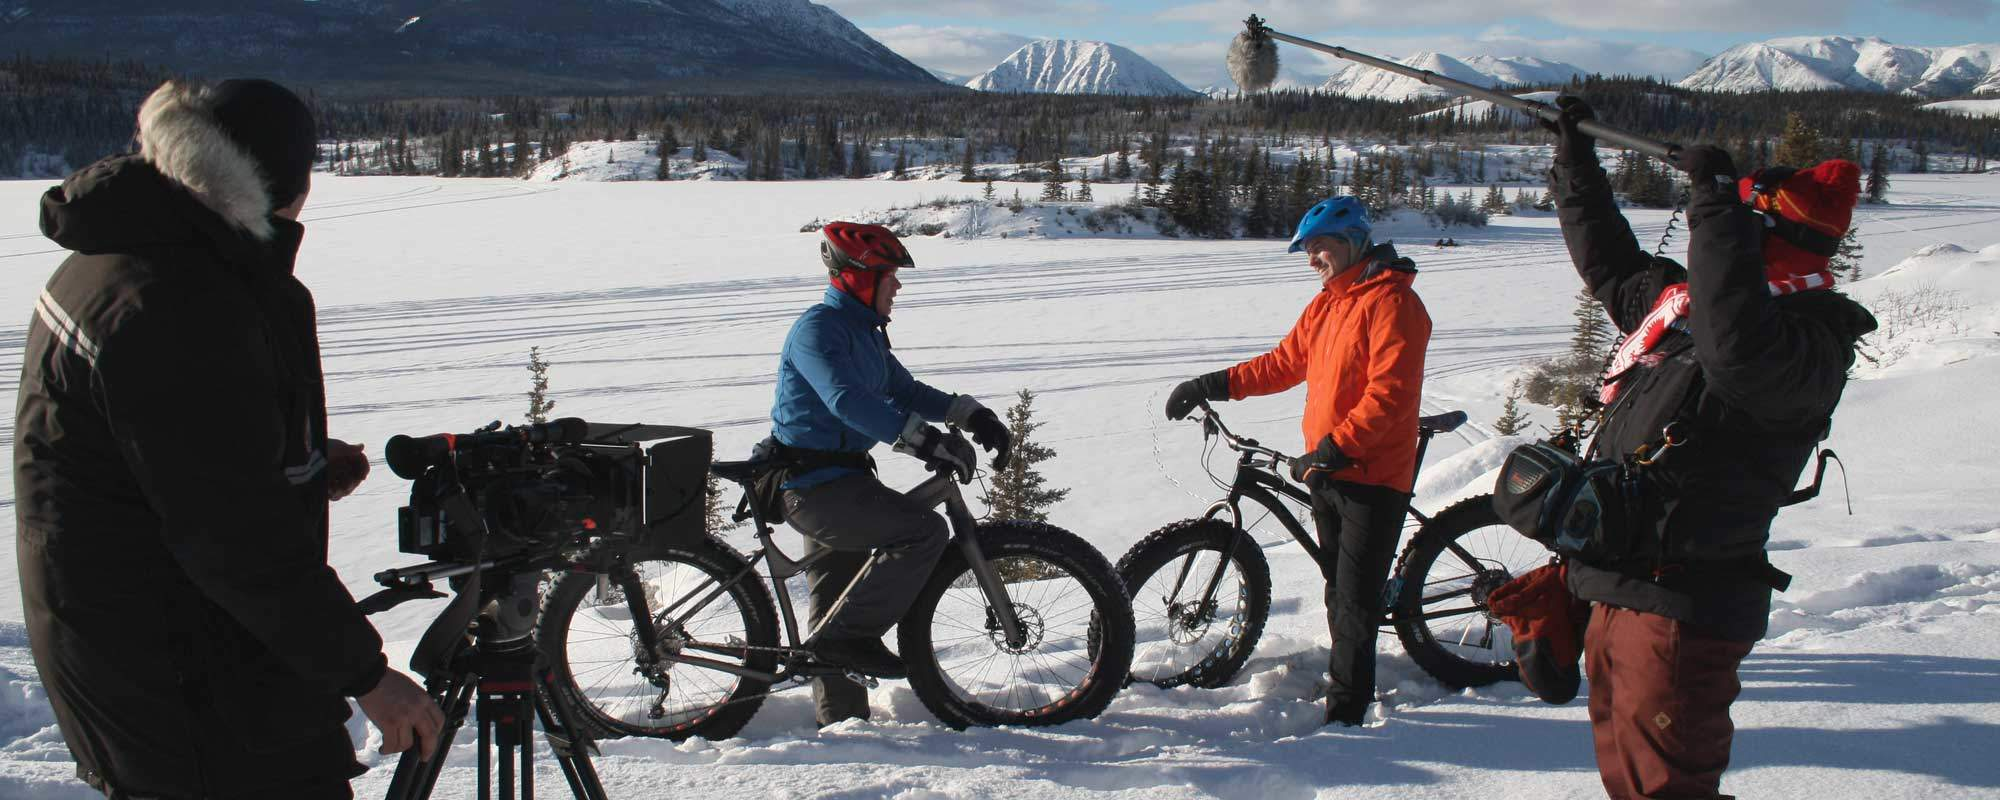 Filming in winter in the Yukon Territory for the TV Show The Great Trails, Our Canadian Film Fixer Crew was interviewing the owner of a Yukon Fatbike club, winter Filming in Canada